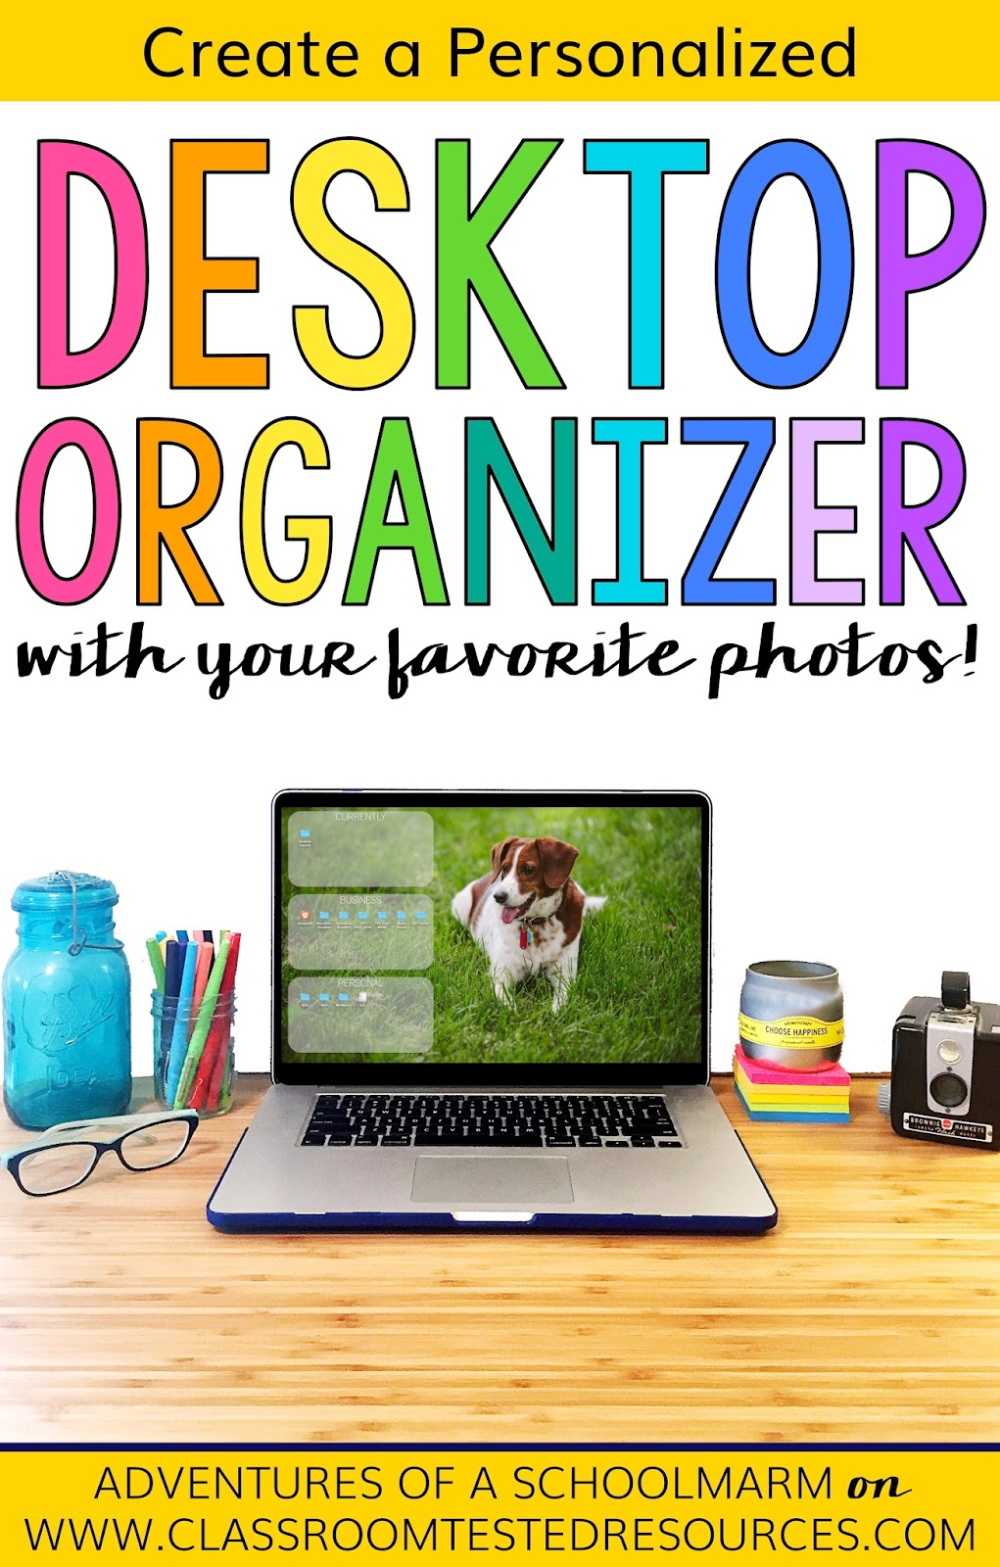 Learn how to make a personalized desktop organizer for